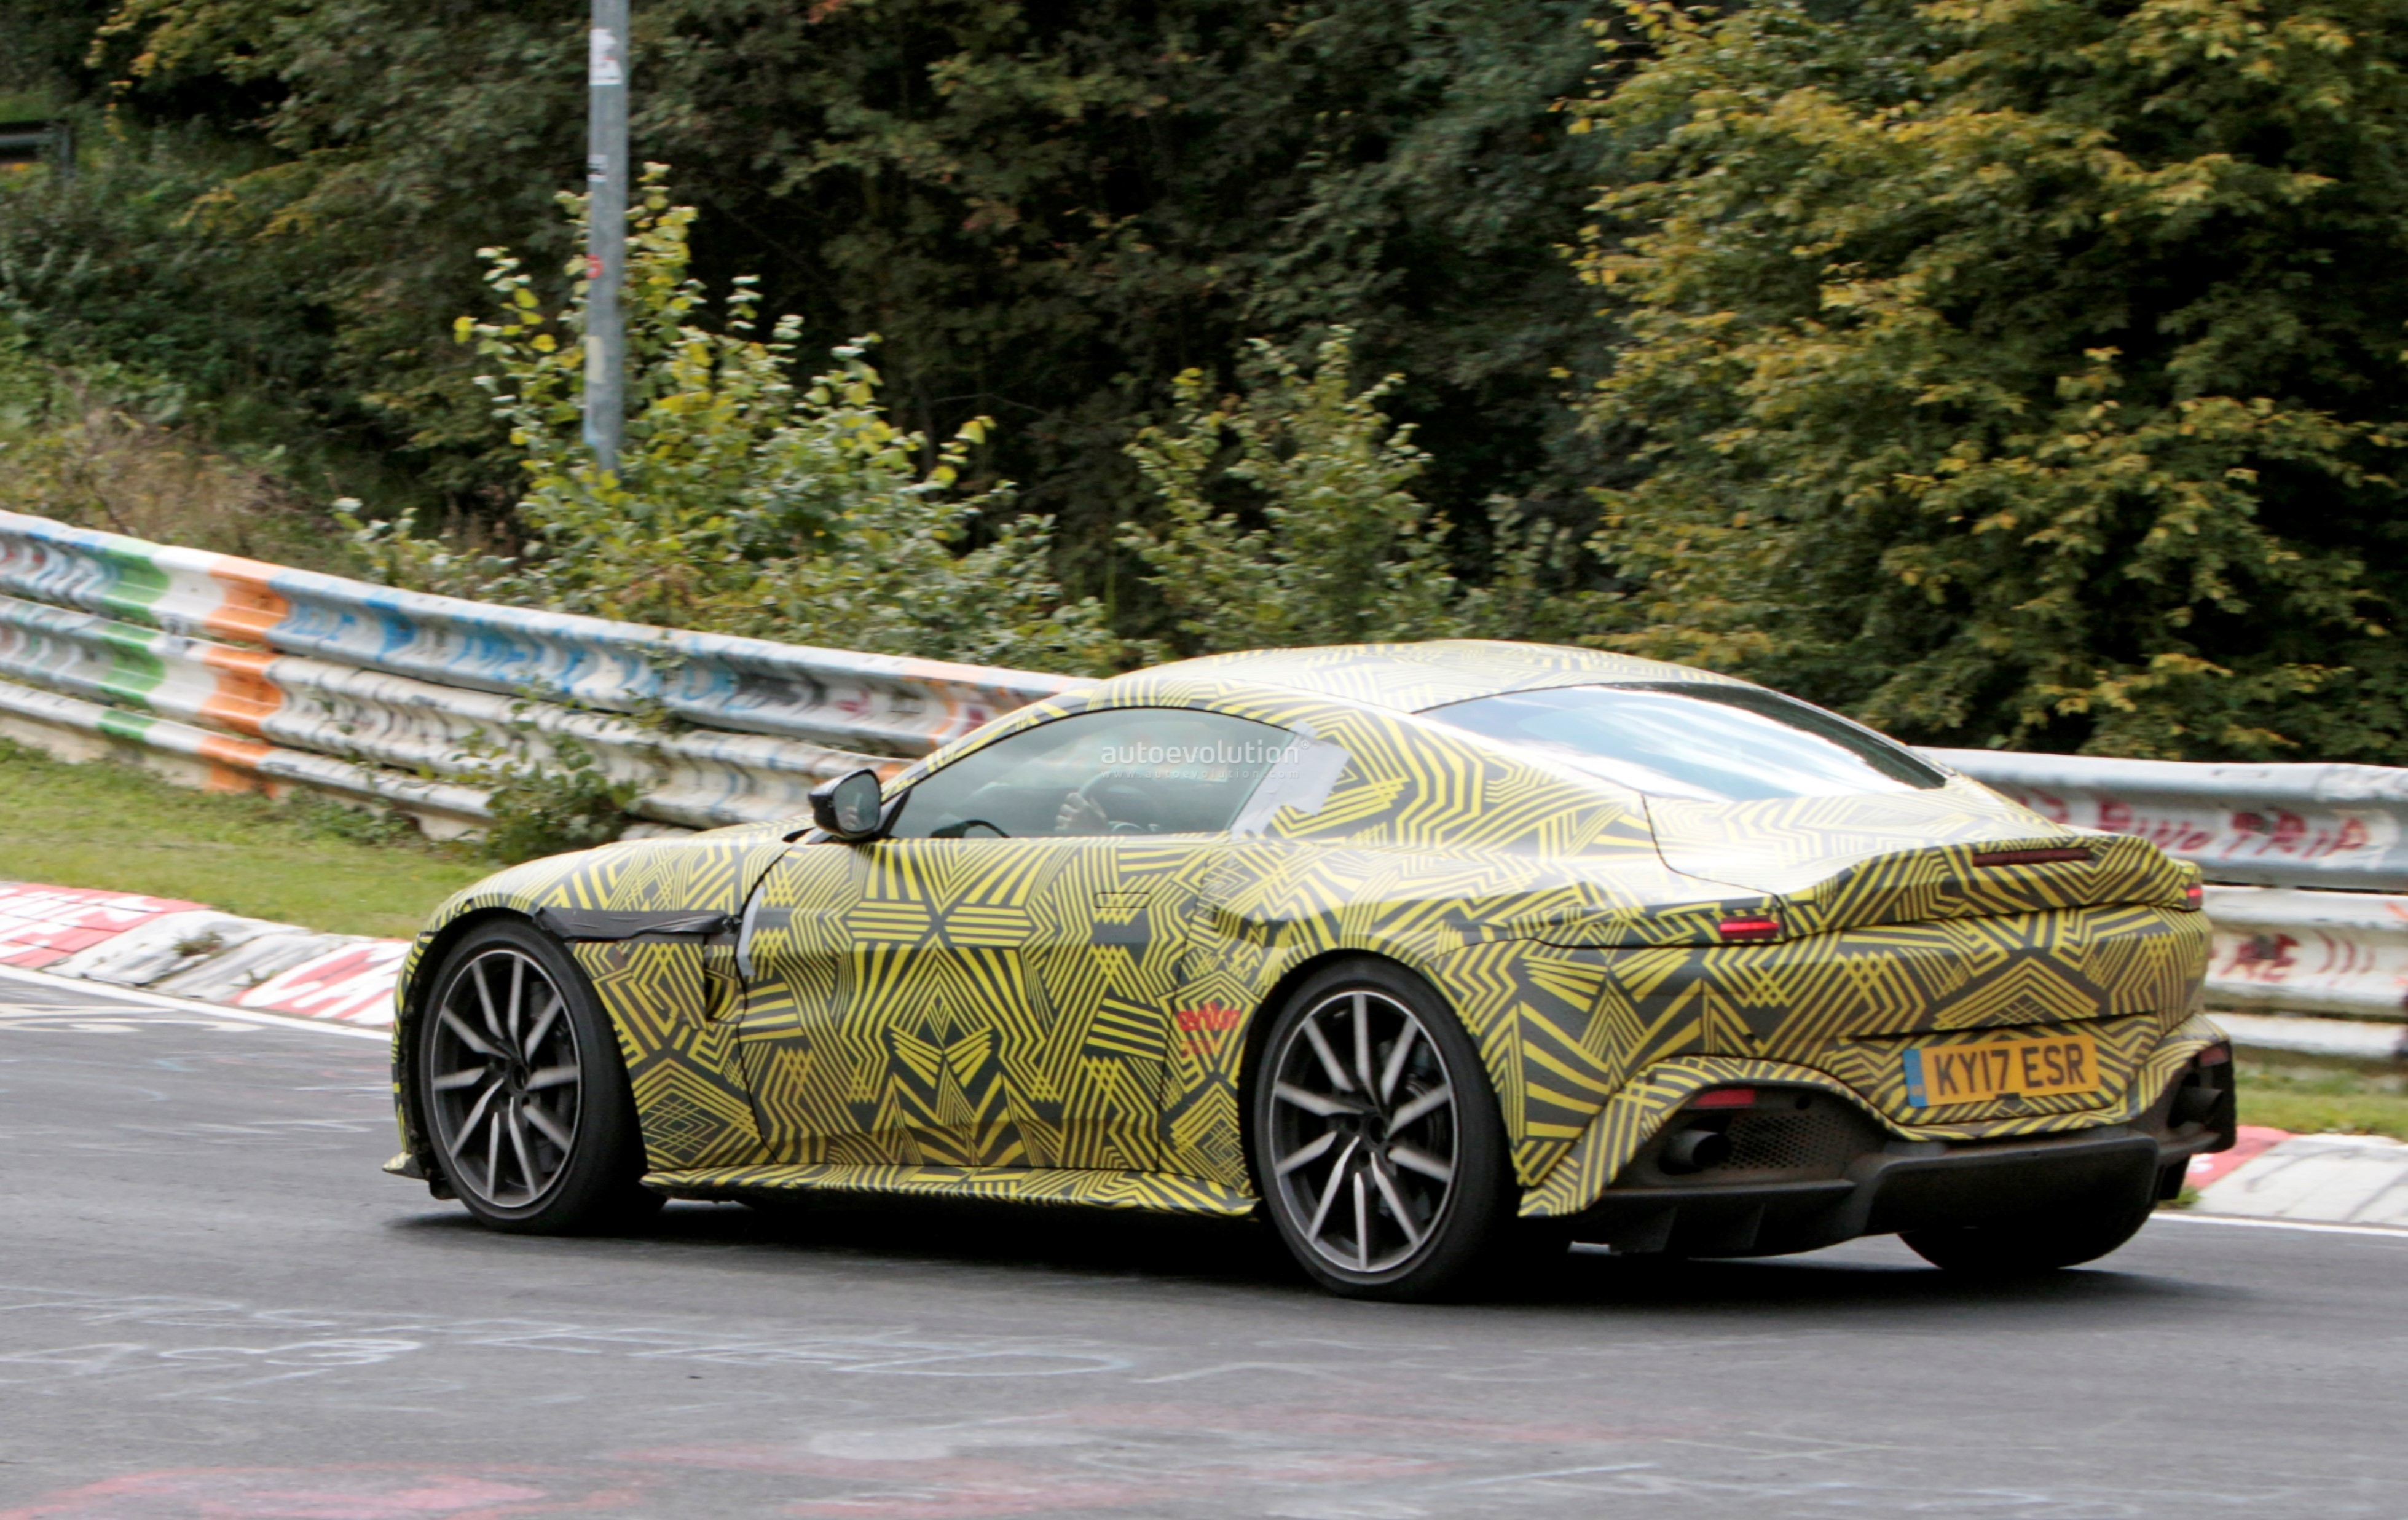 2019-aston​-martin-v8​-vantage-s​pied-on-nu​rburgring-​looks-gorg​eous-even-​with-camo_​8